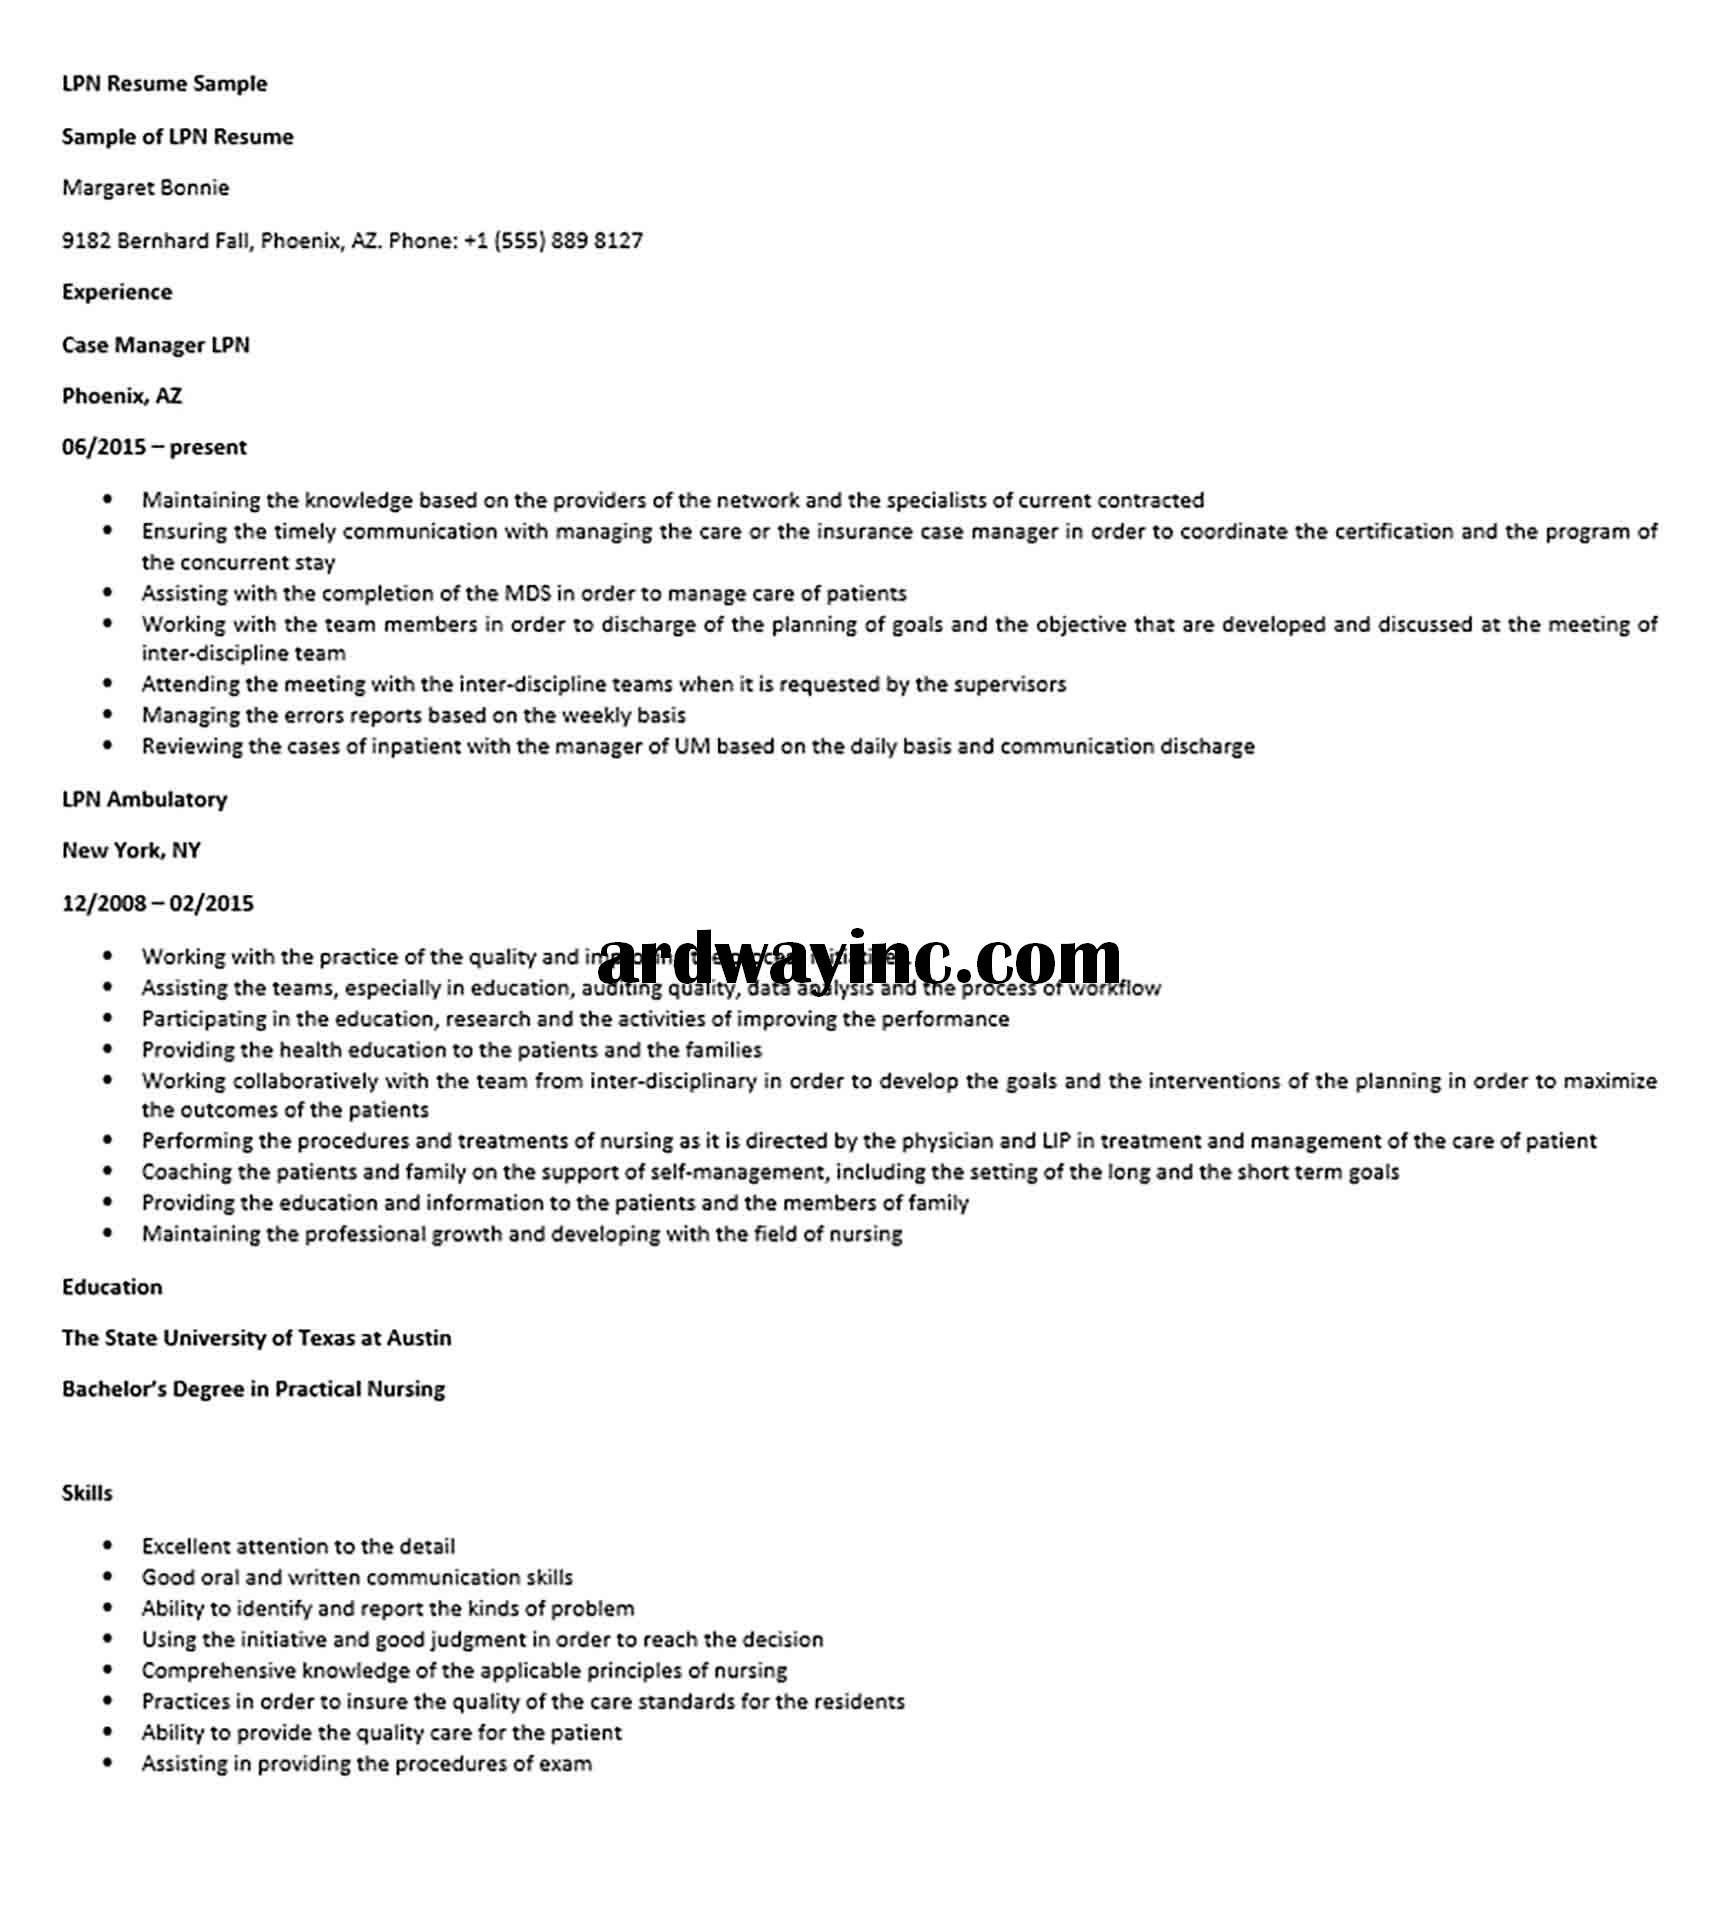 LPN Resume Sample in 2020 Lpn resume, Lpn, Resume